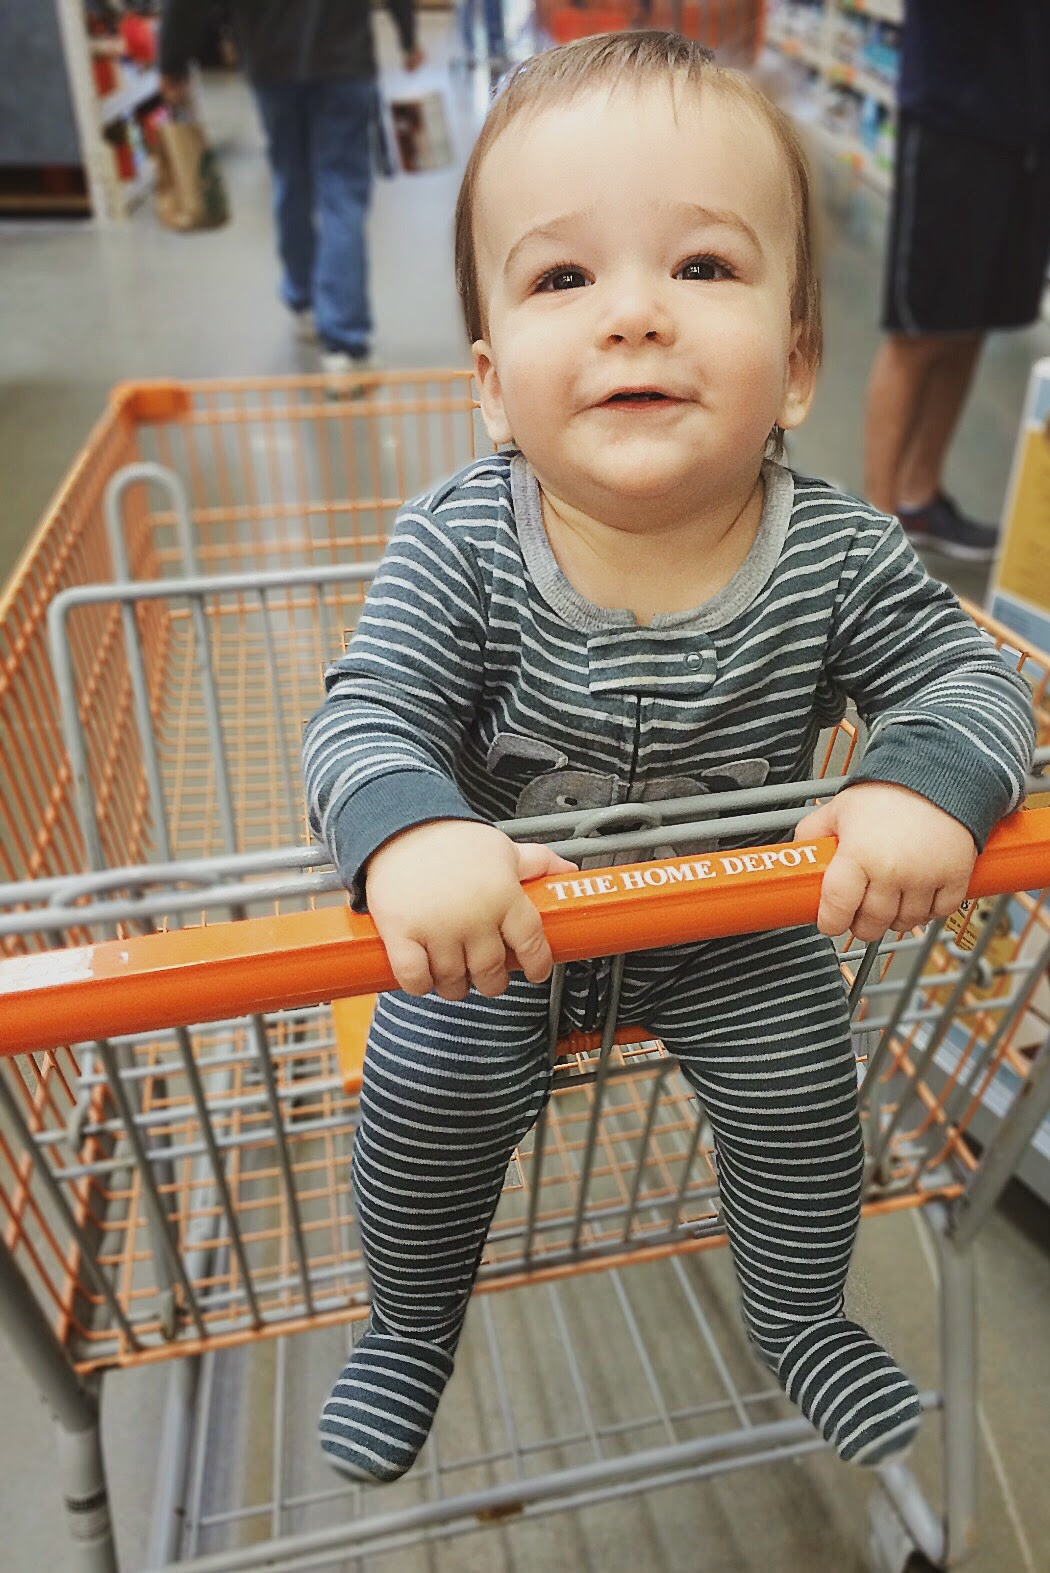 The Home Depot Baby